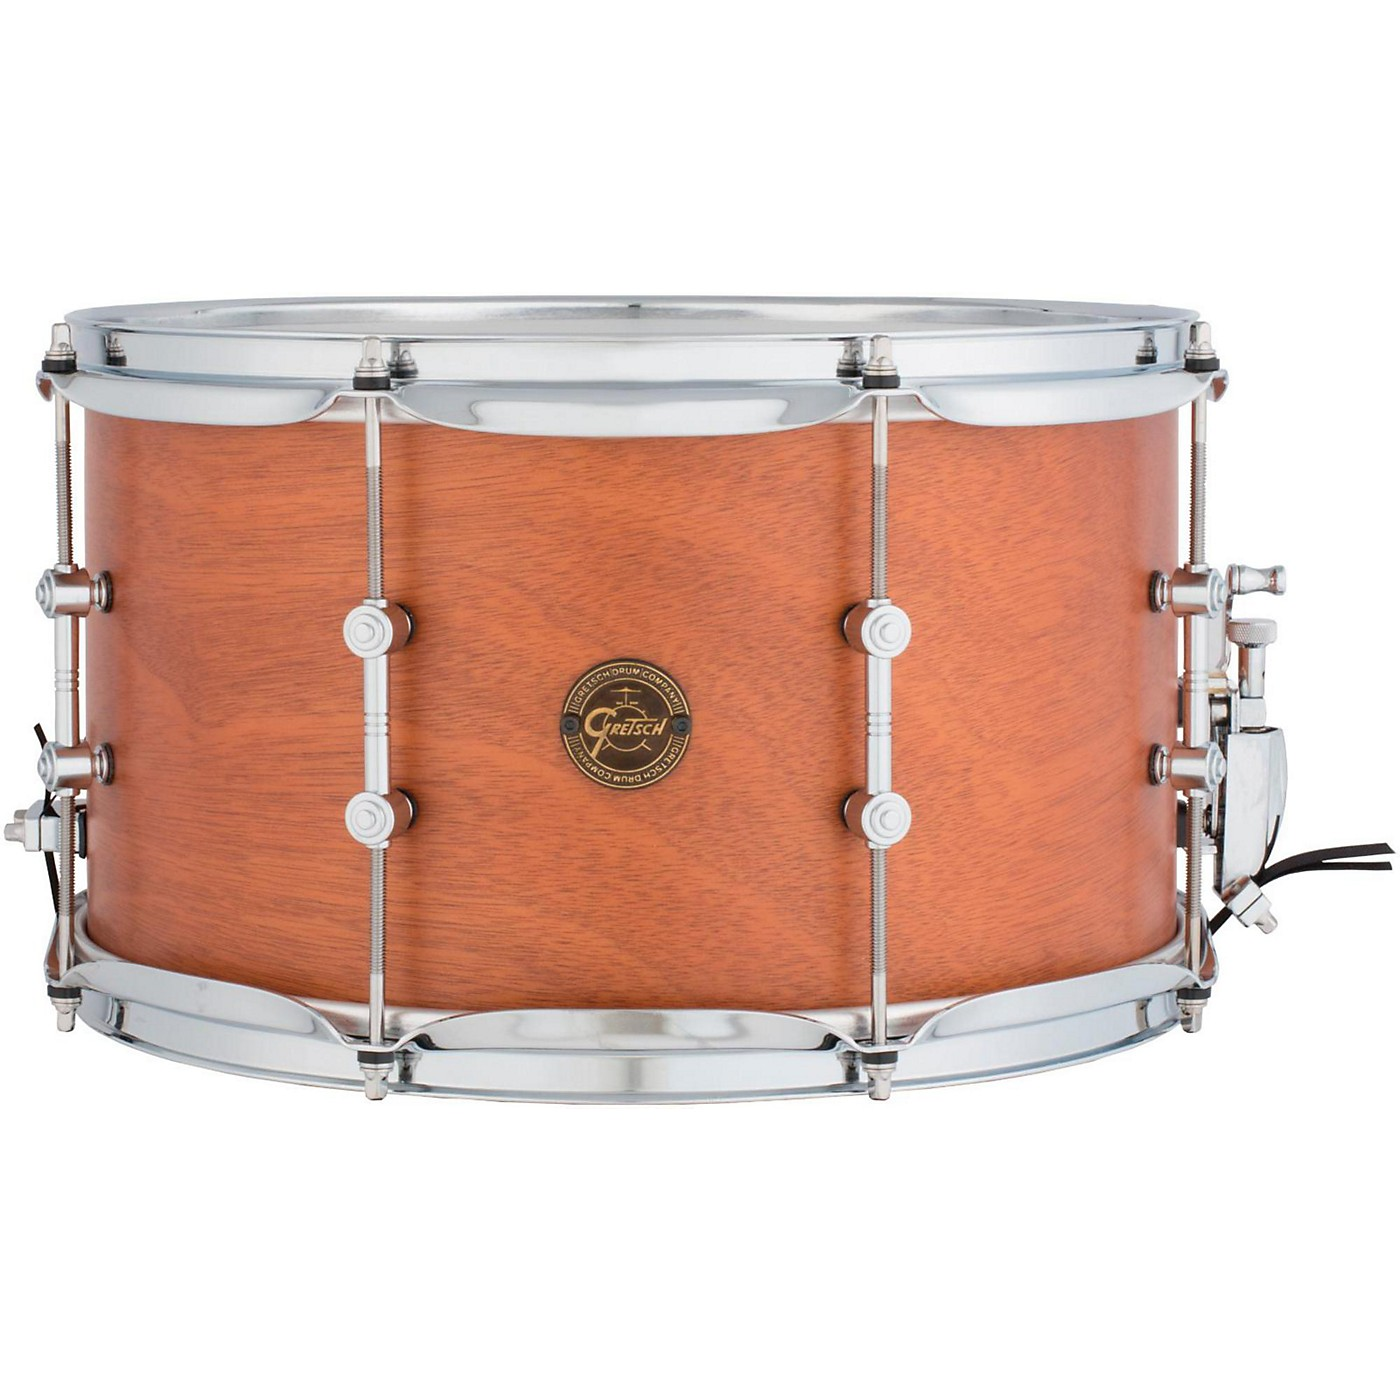 Gretsch Drums Swamp Dawg Snare Drum thumbnail